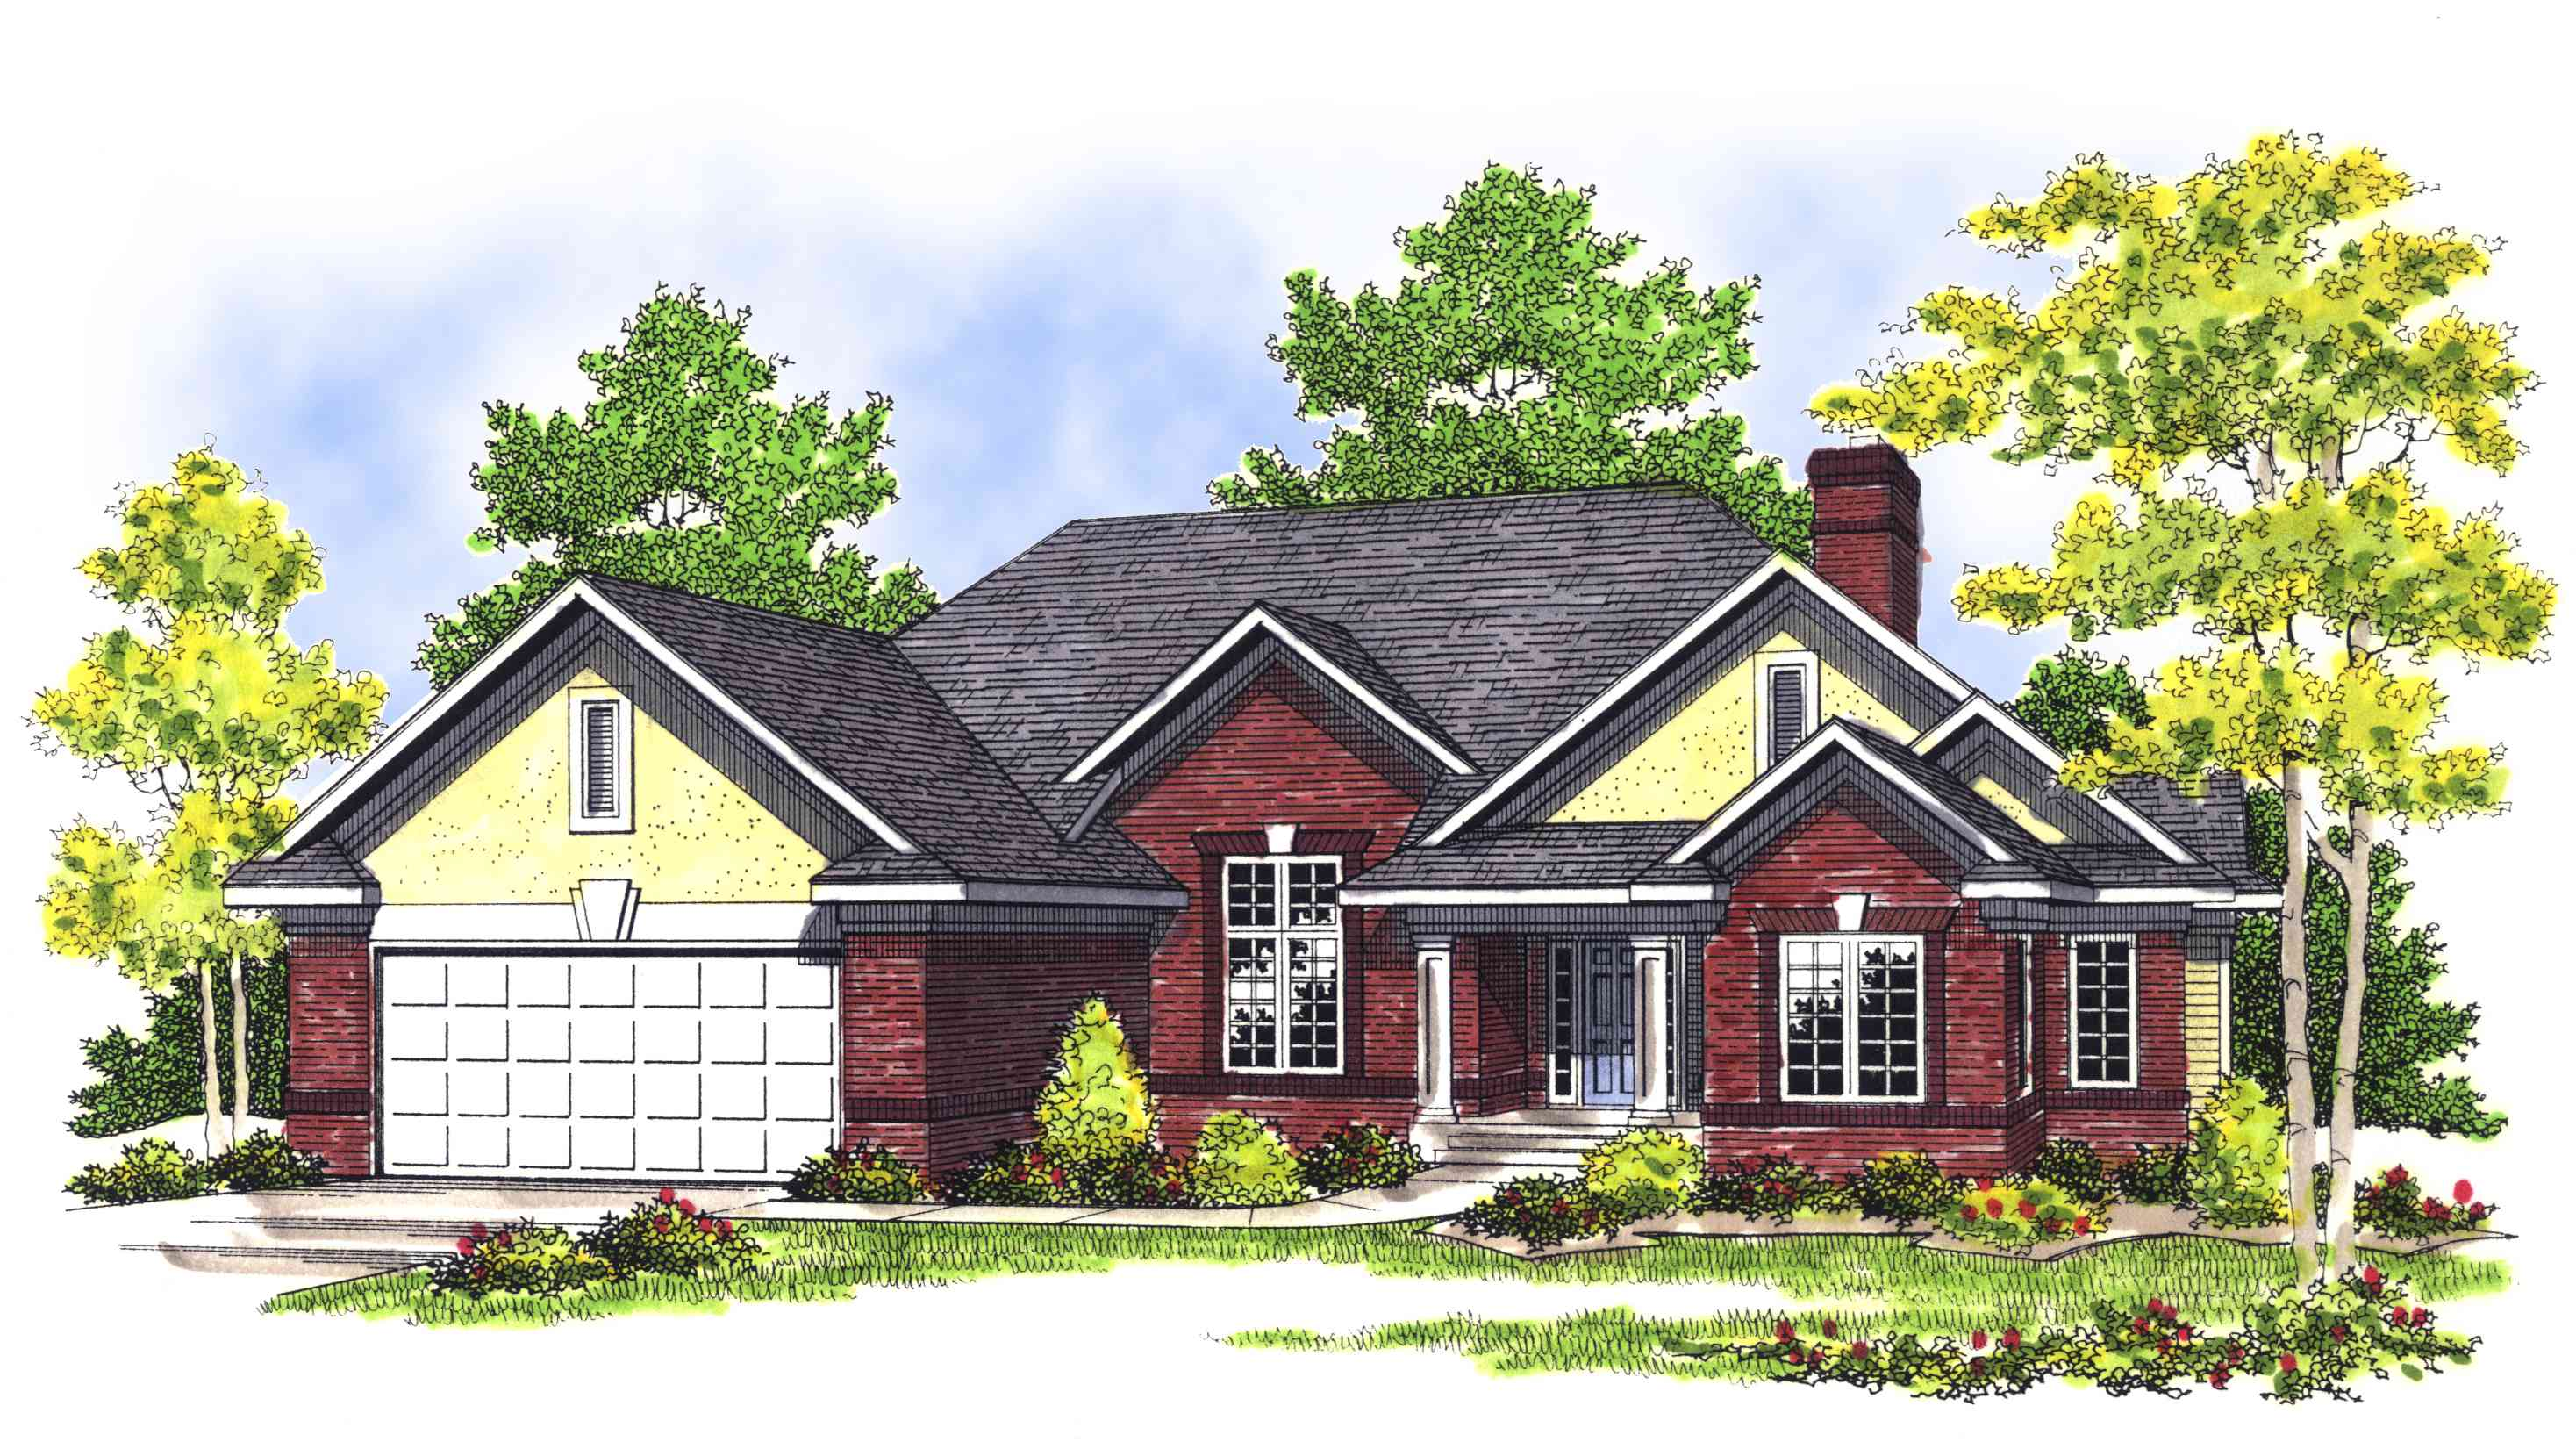 Traditional brick home plan 89384ah architectural for Traditional brick house plans